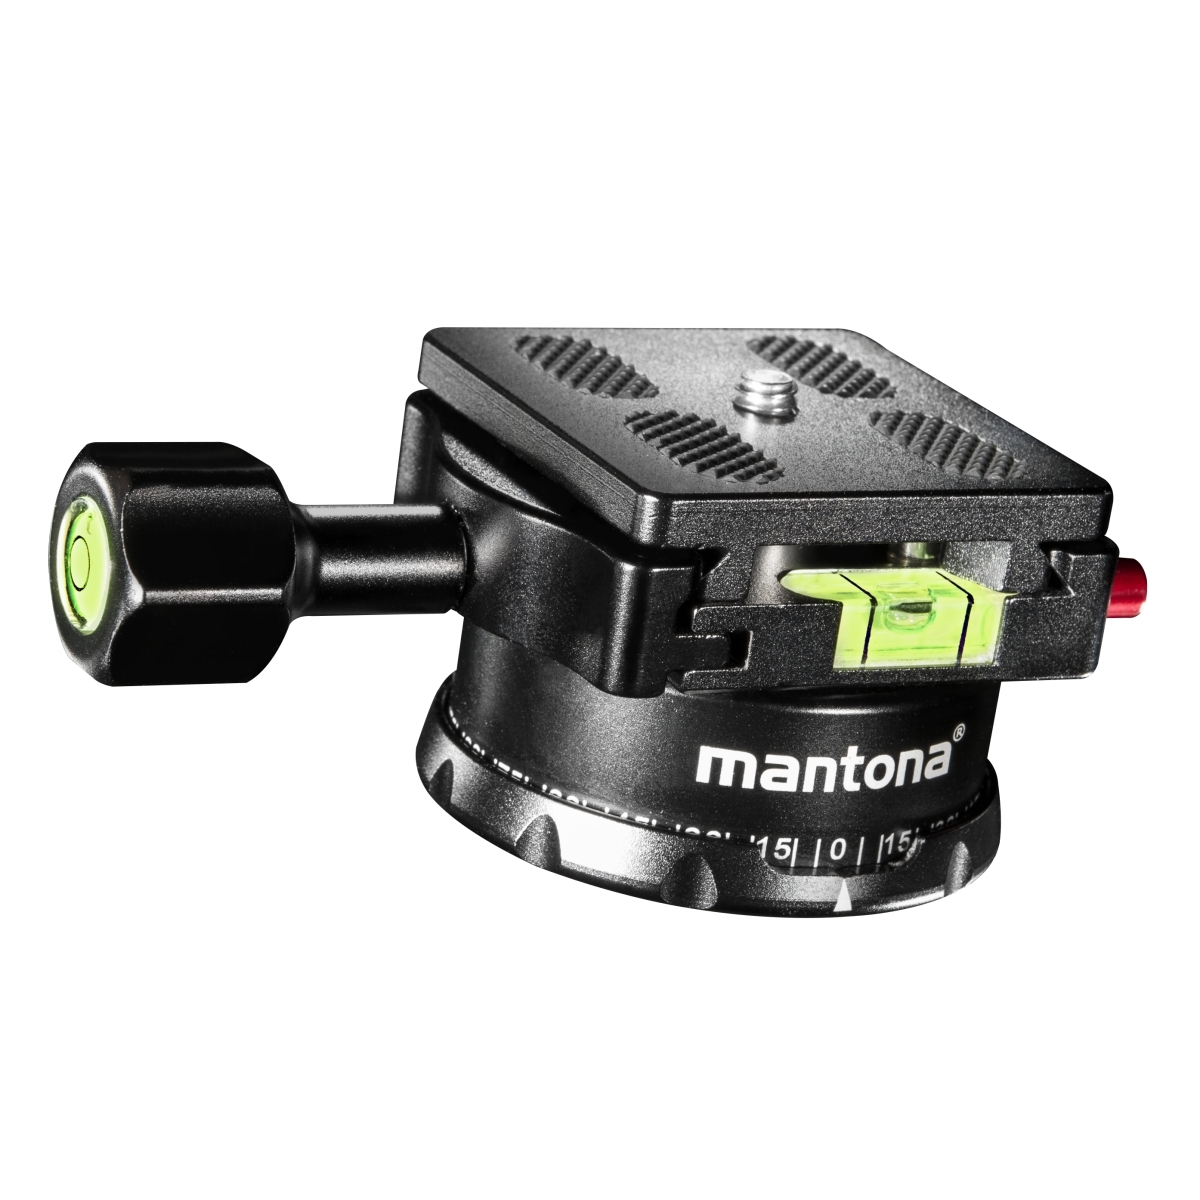 Mantona Panorama Head 360